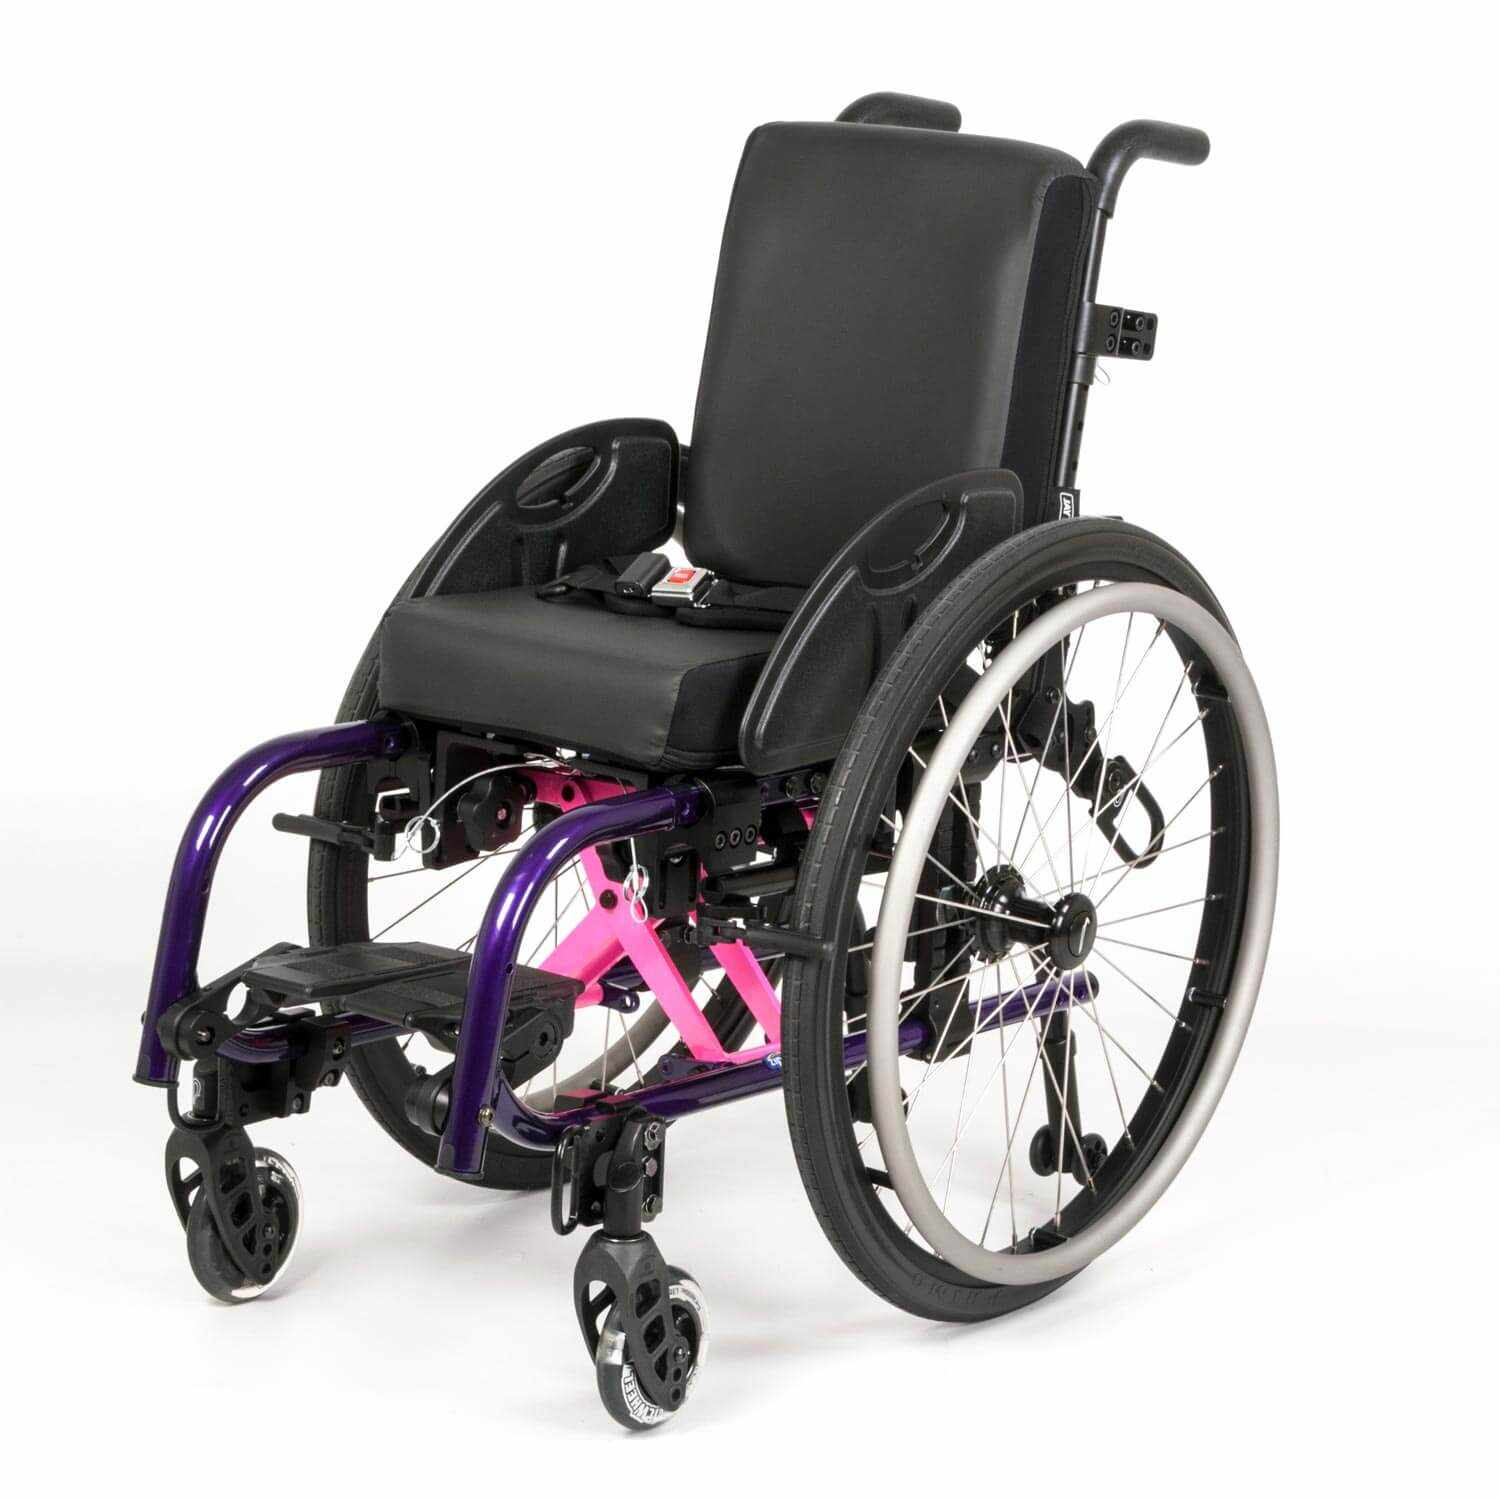 X'Cape pediatric folding wheelchair